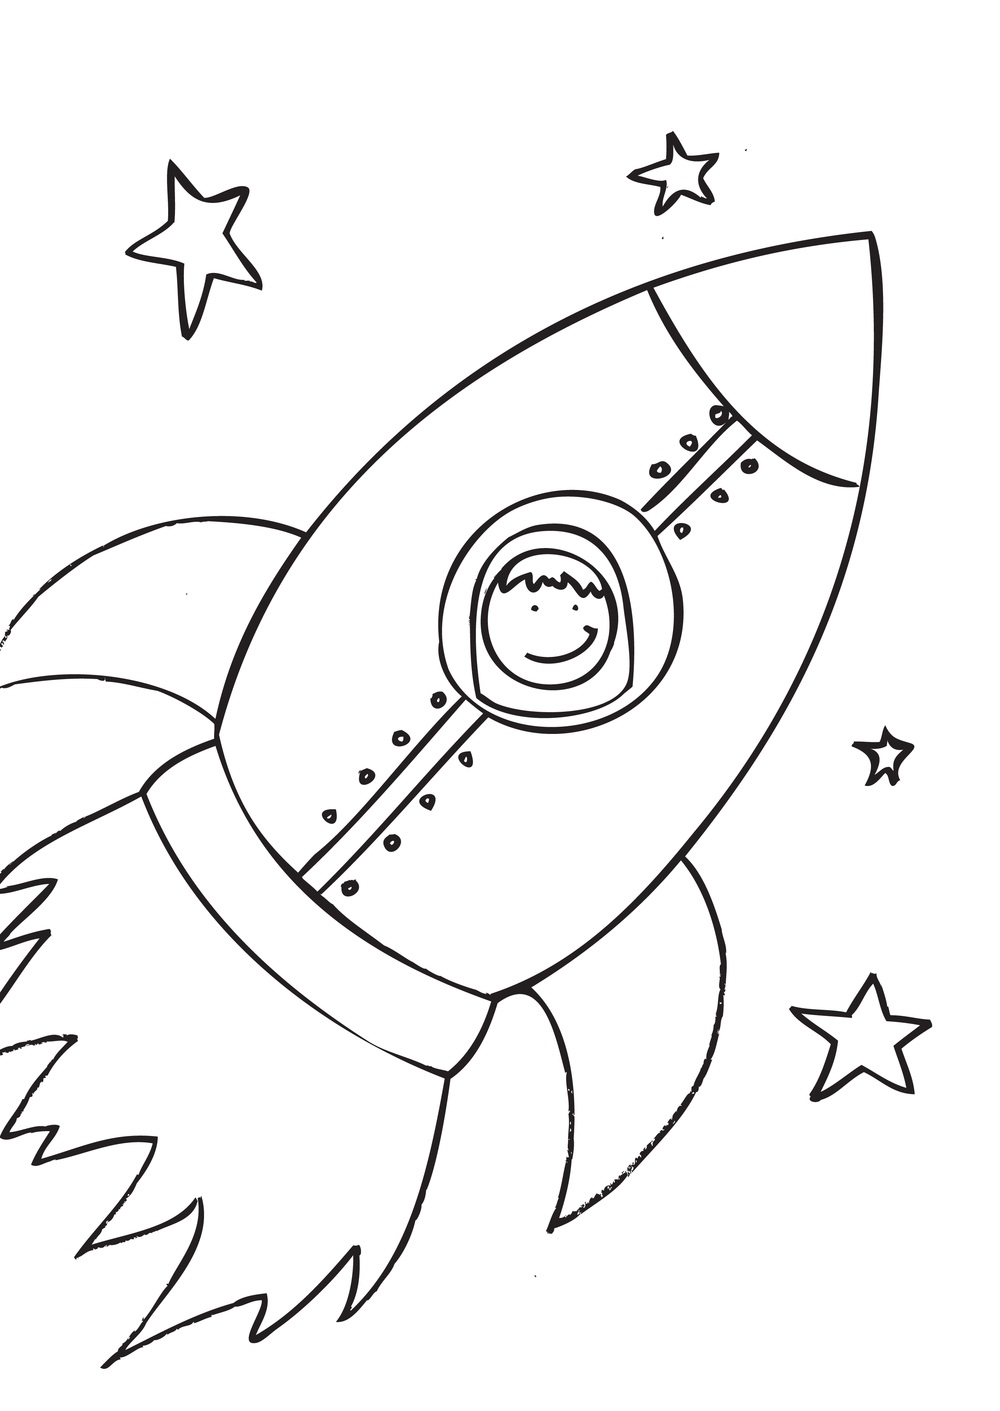 1000x1411 Perfect Rocket Ship Coloring Pages Free Printable For Kids